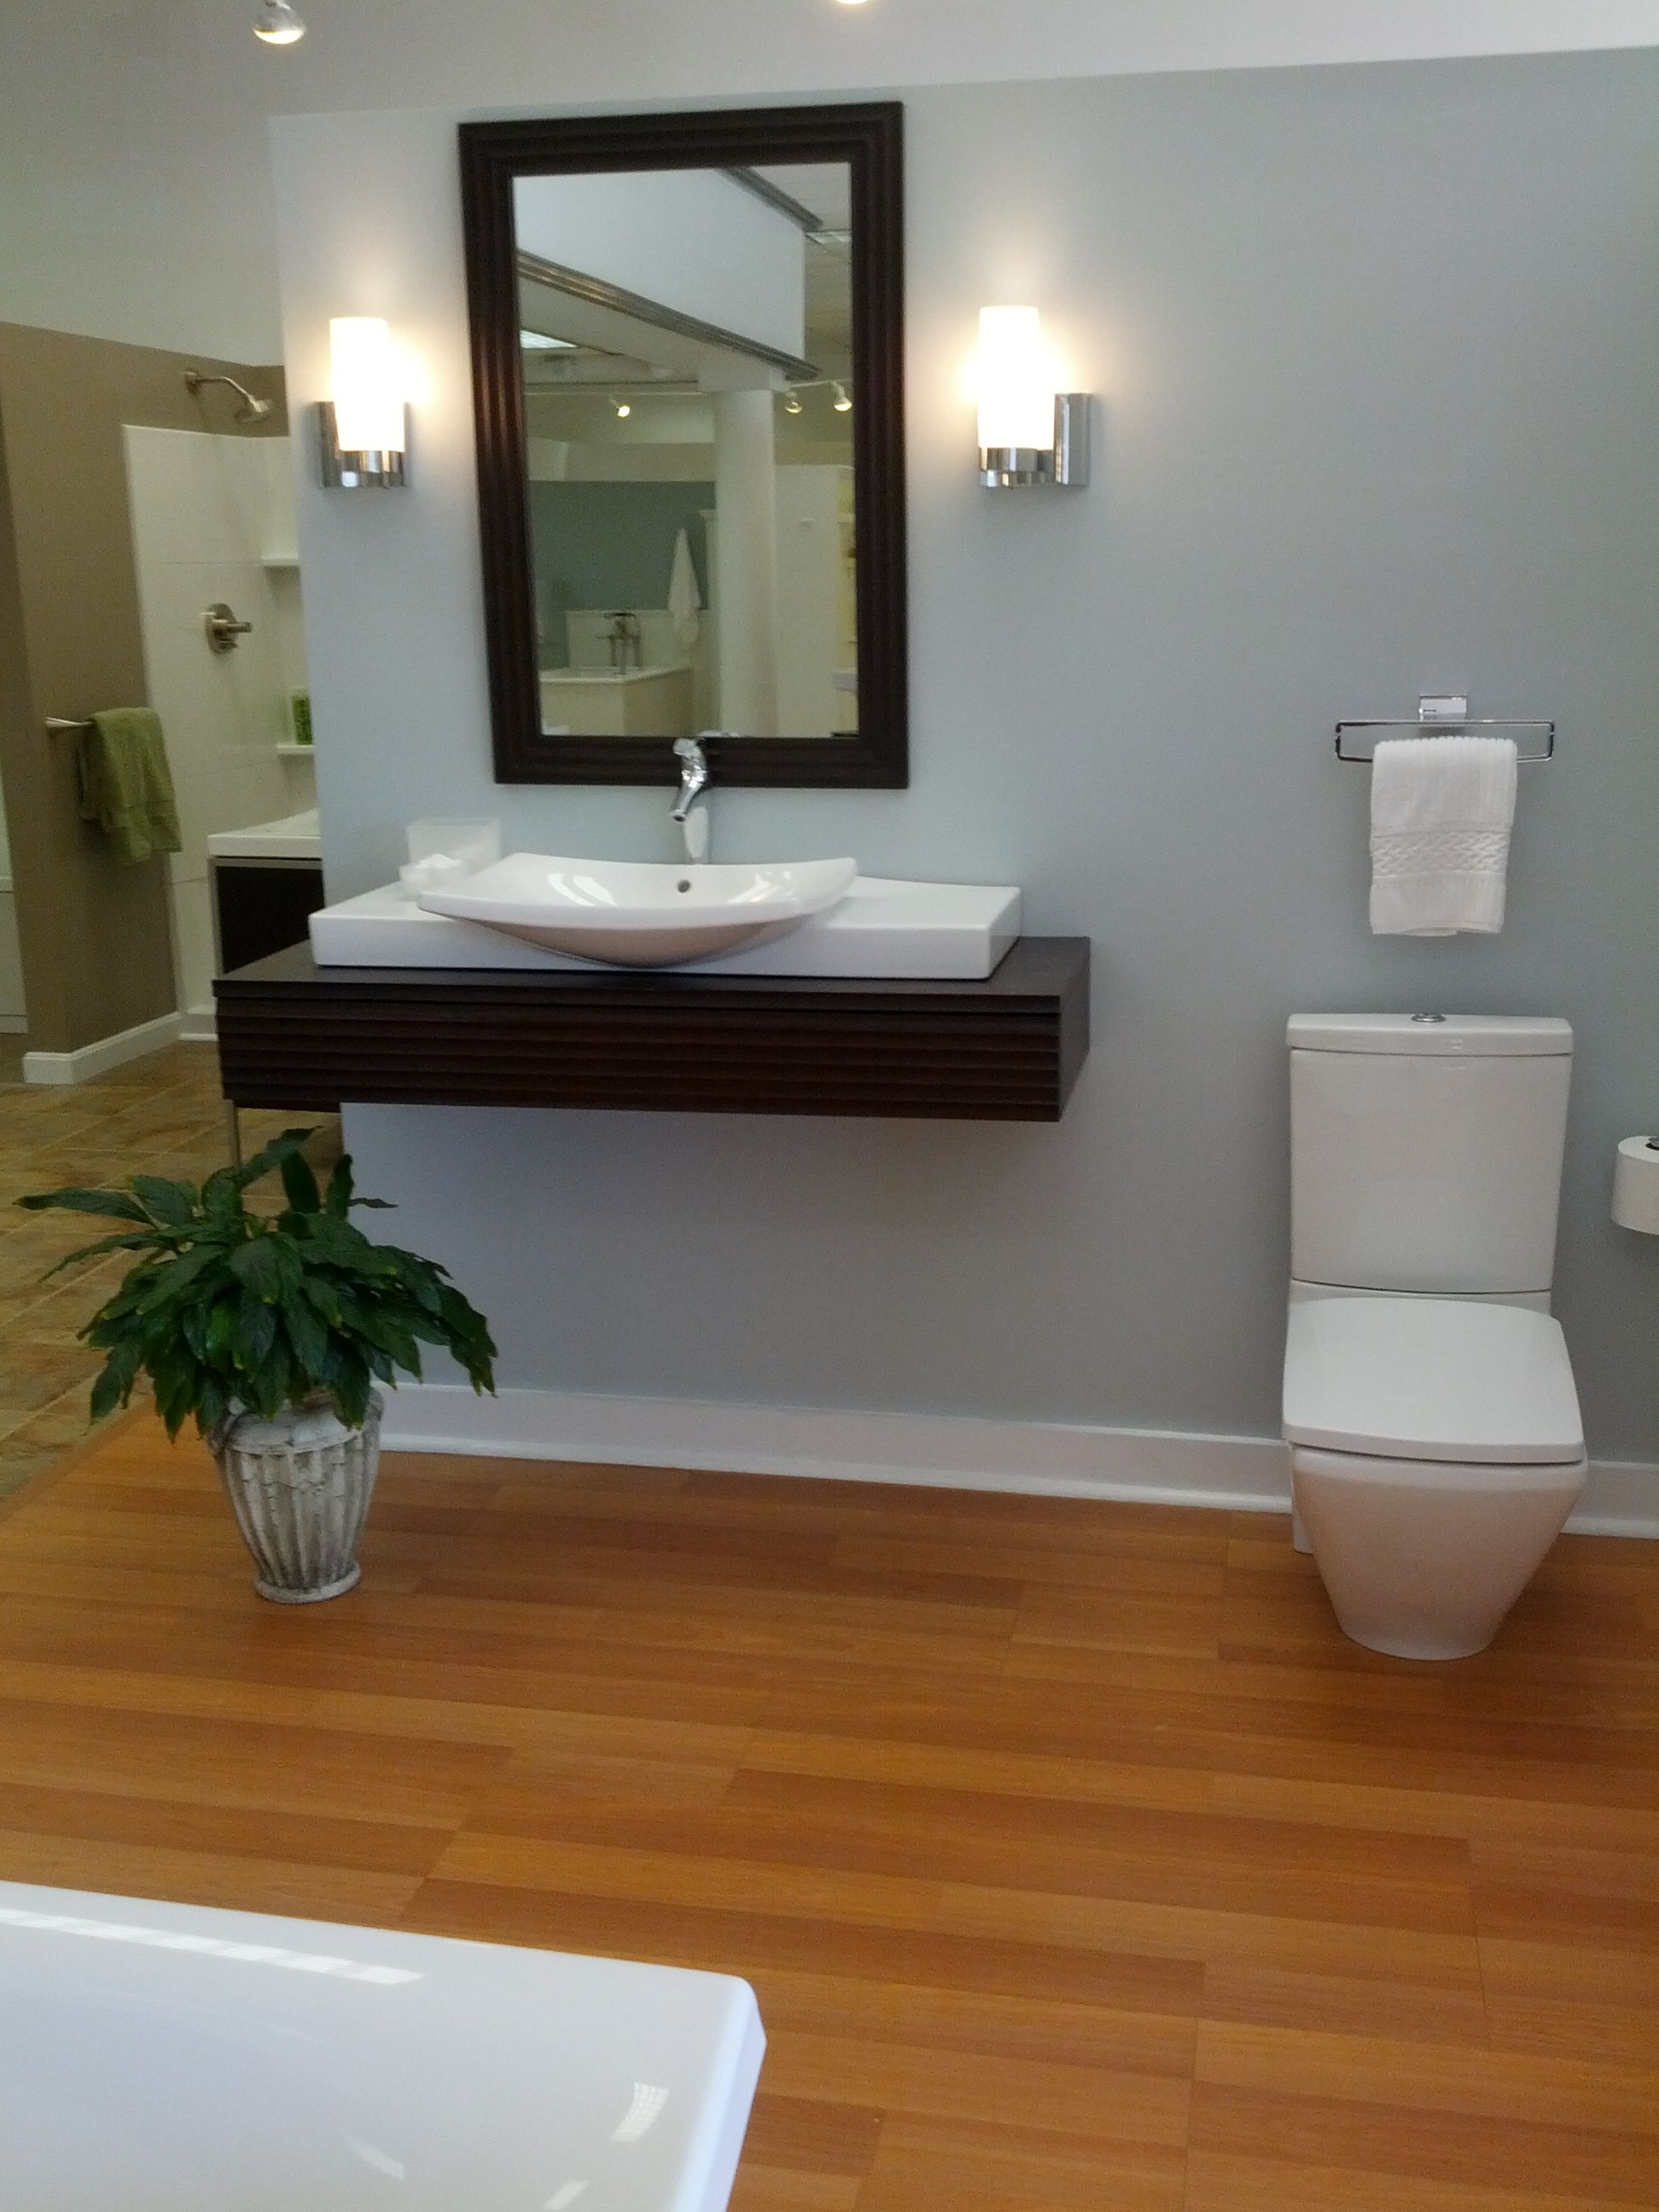 Small Handicap Bathroom Ideas. 1000 images about handicapped ...